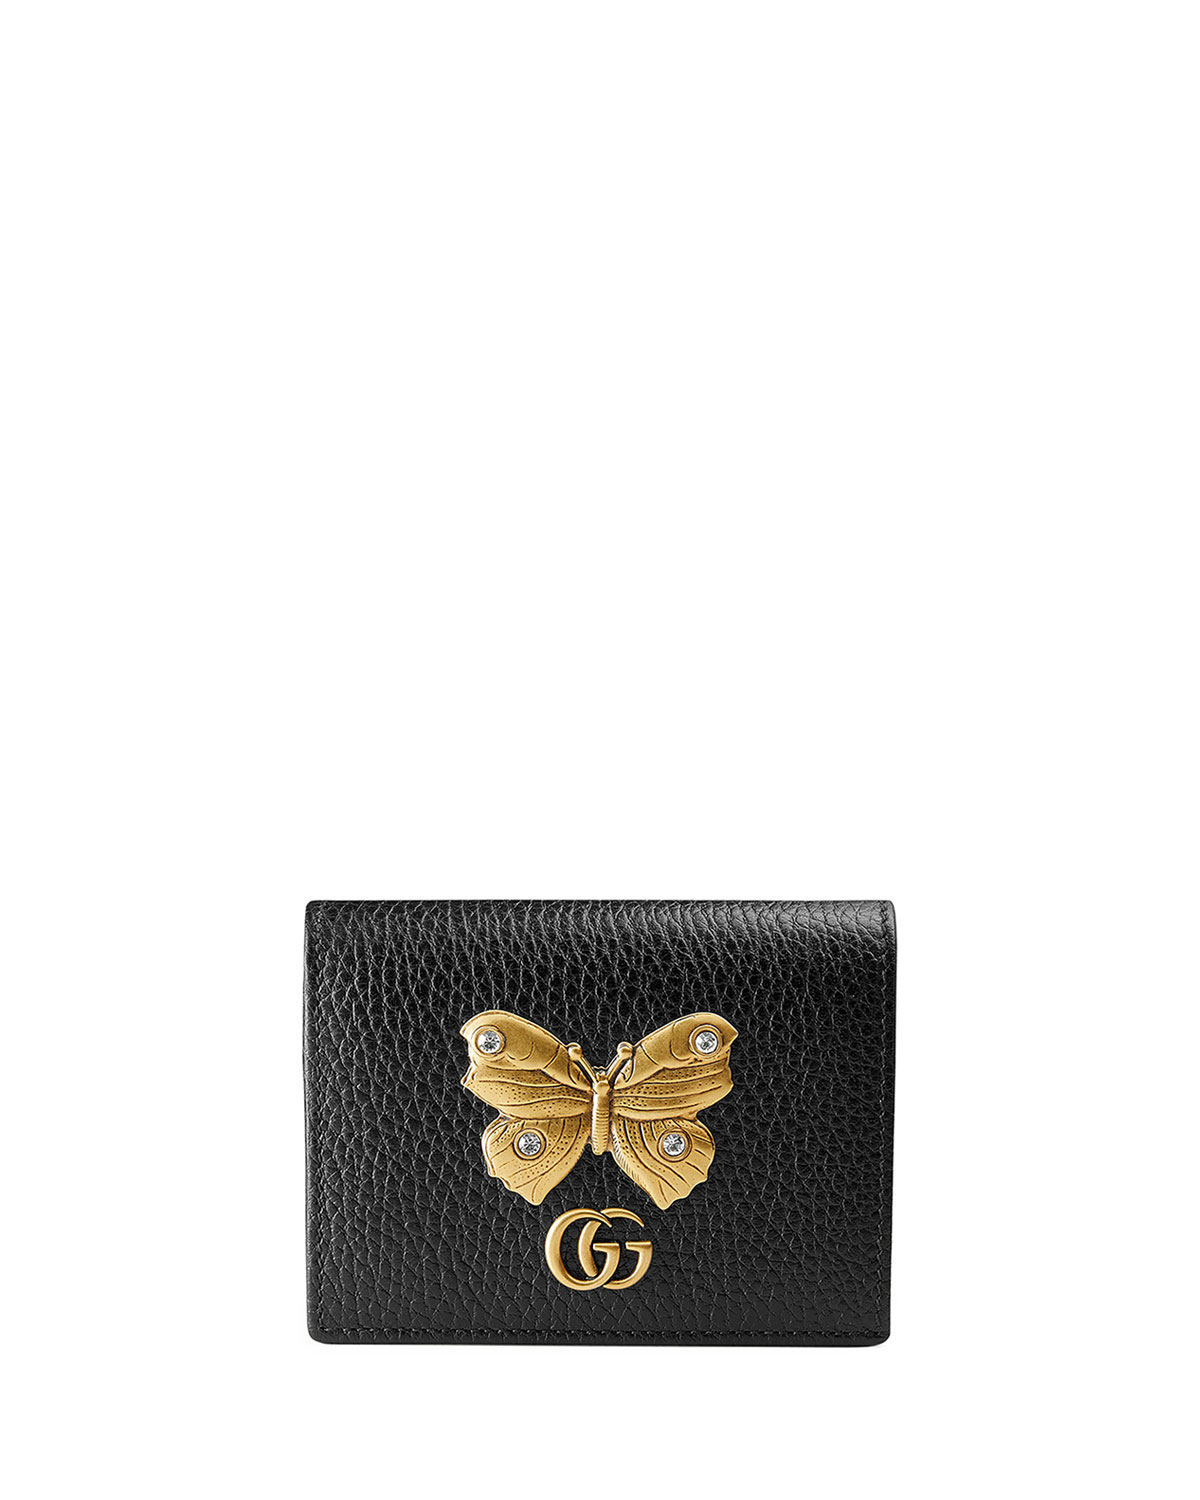 Gucci Leather Card Case | Neiman Marcus